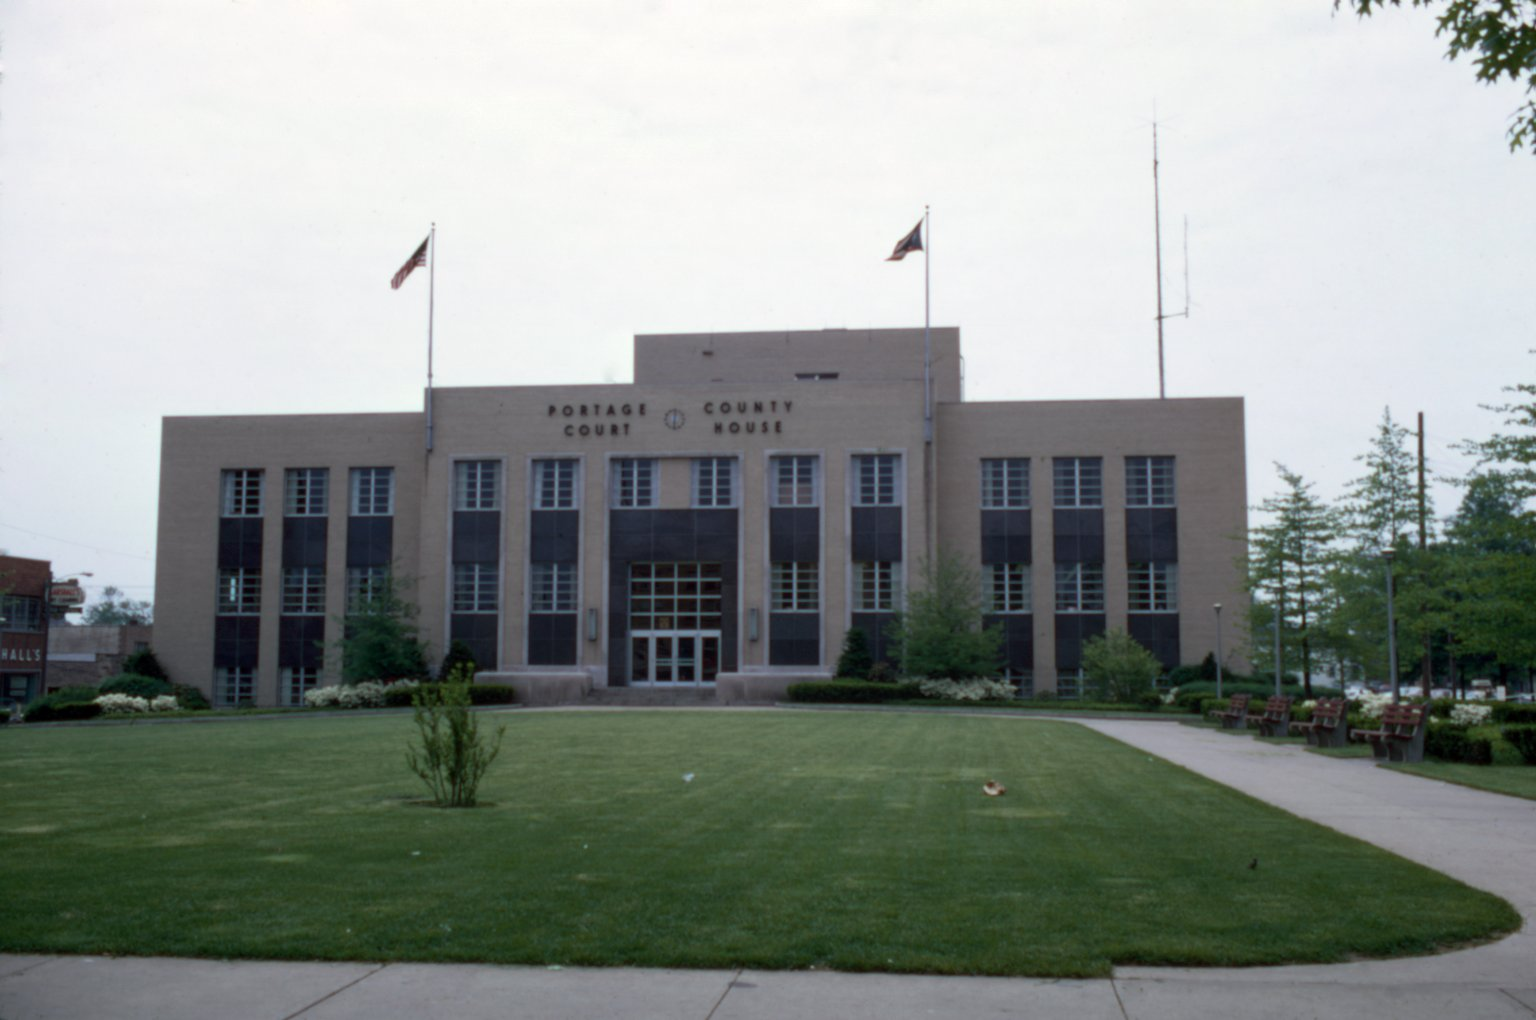 Portage County Courthouse